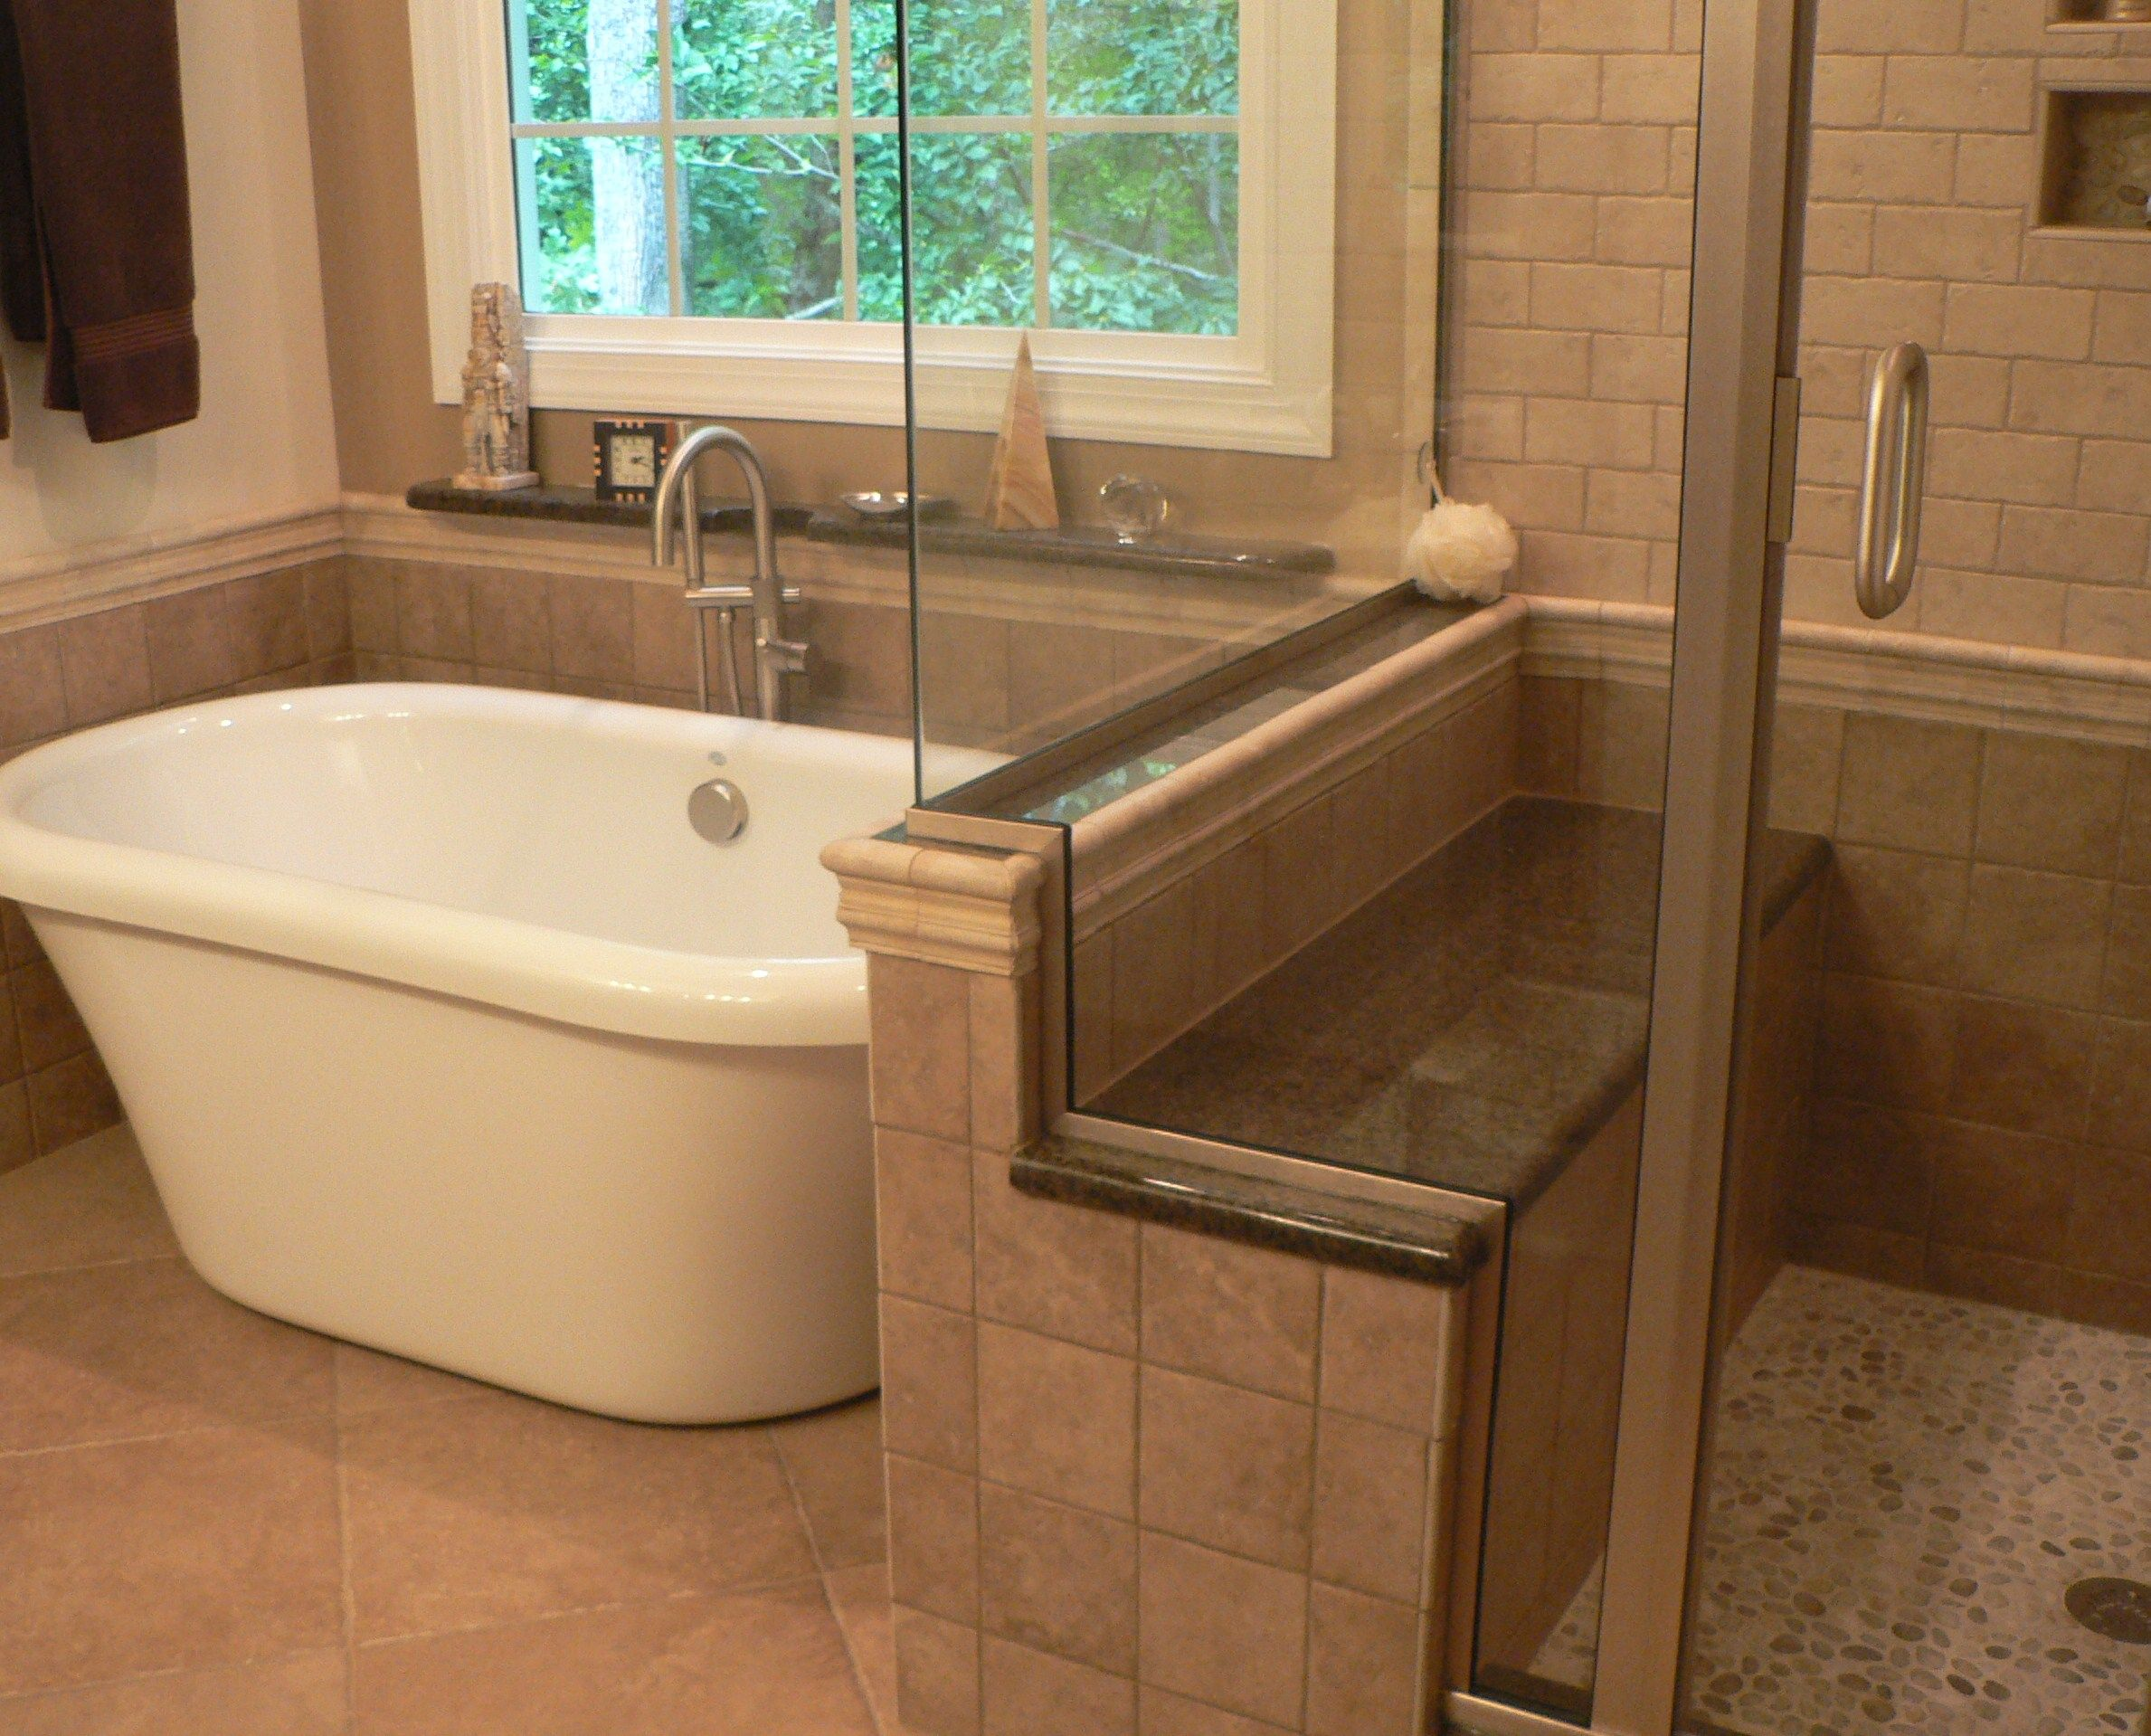 Master Bath Remodels Wake Remodeling Bathrooms Cary NC - How much would a bathroom remodel cost for bathroom decor ideas